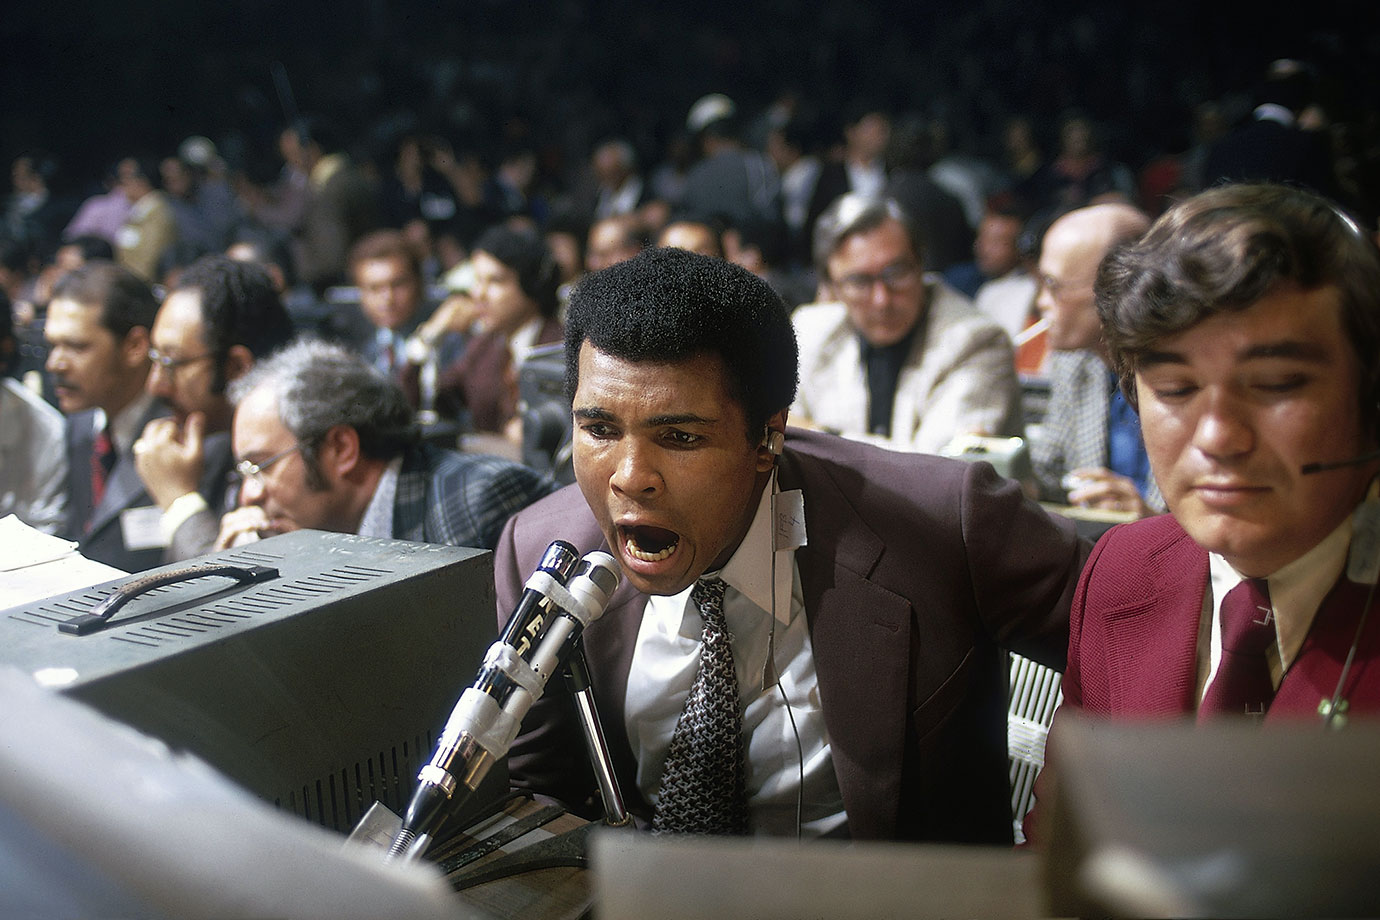 Exploring a different side of the sport, Ali broadcasts the fight between George Foreman and Ken Norton in March 1974. Foreman won the fight by technical knockout in the second round, setting up the showdown with Ali in Zaire.